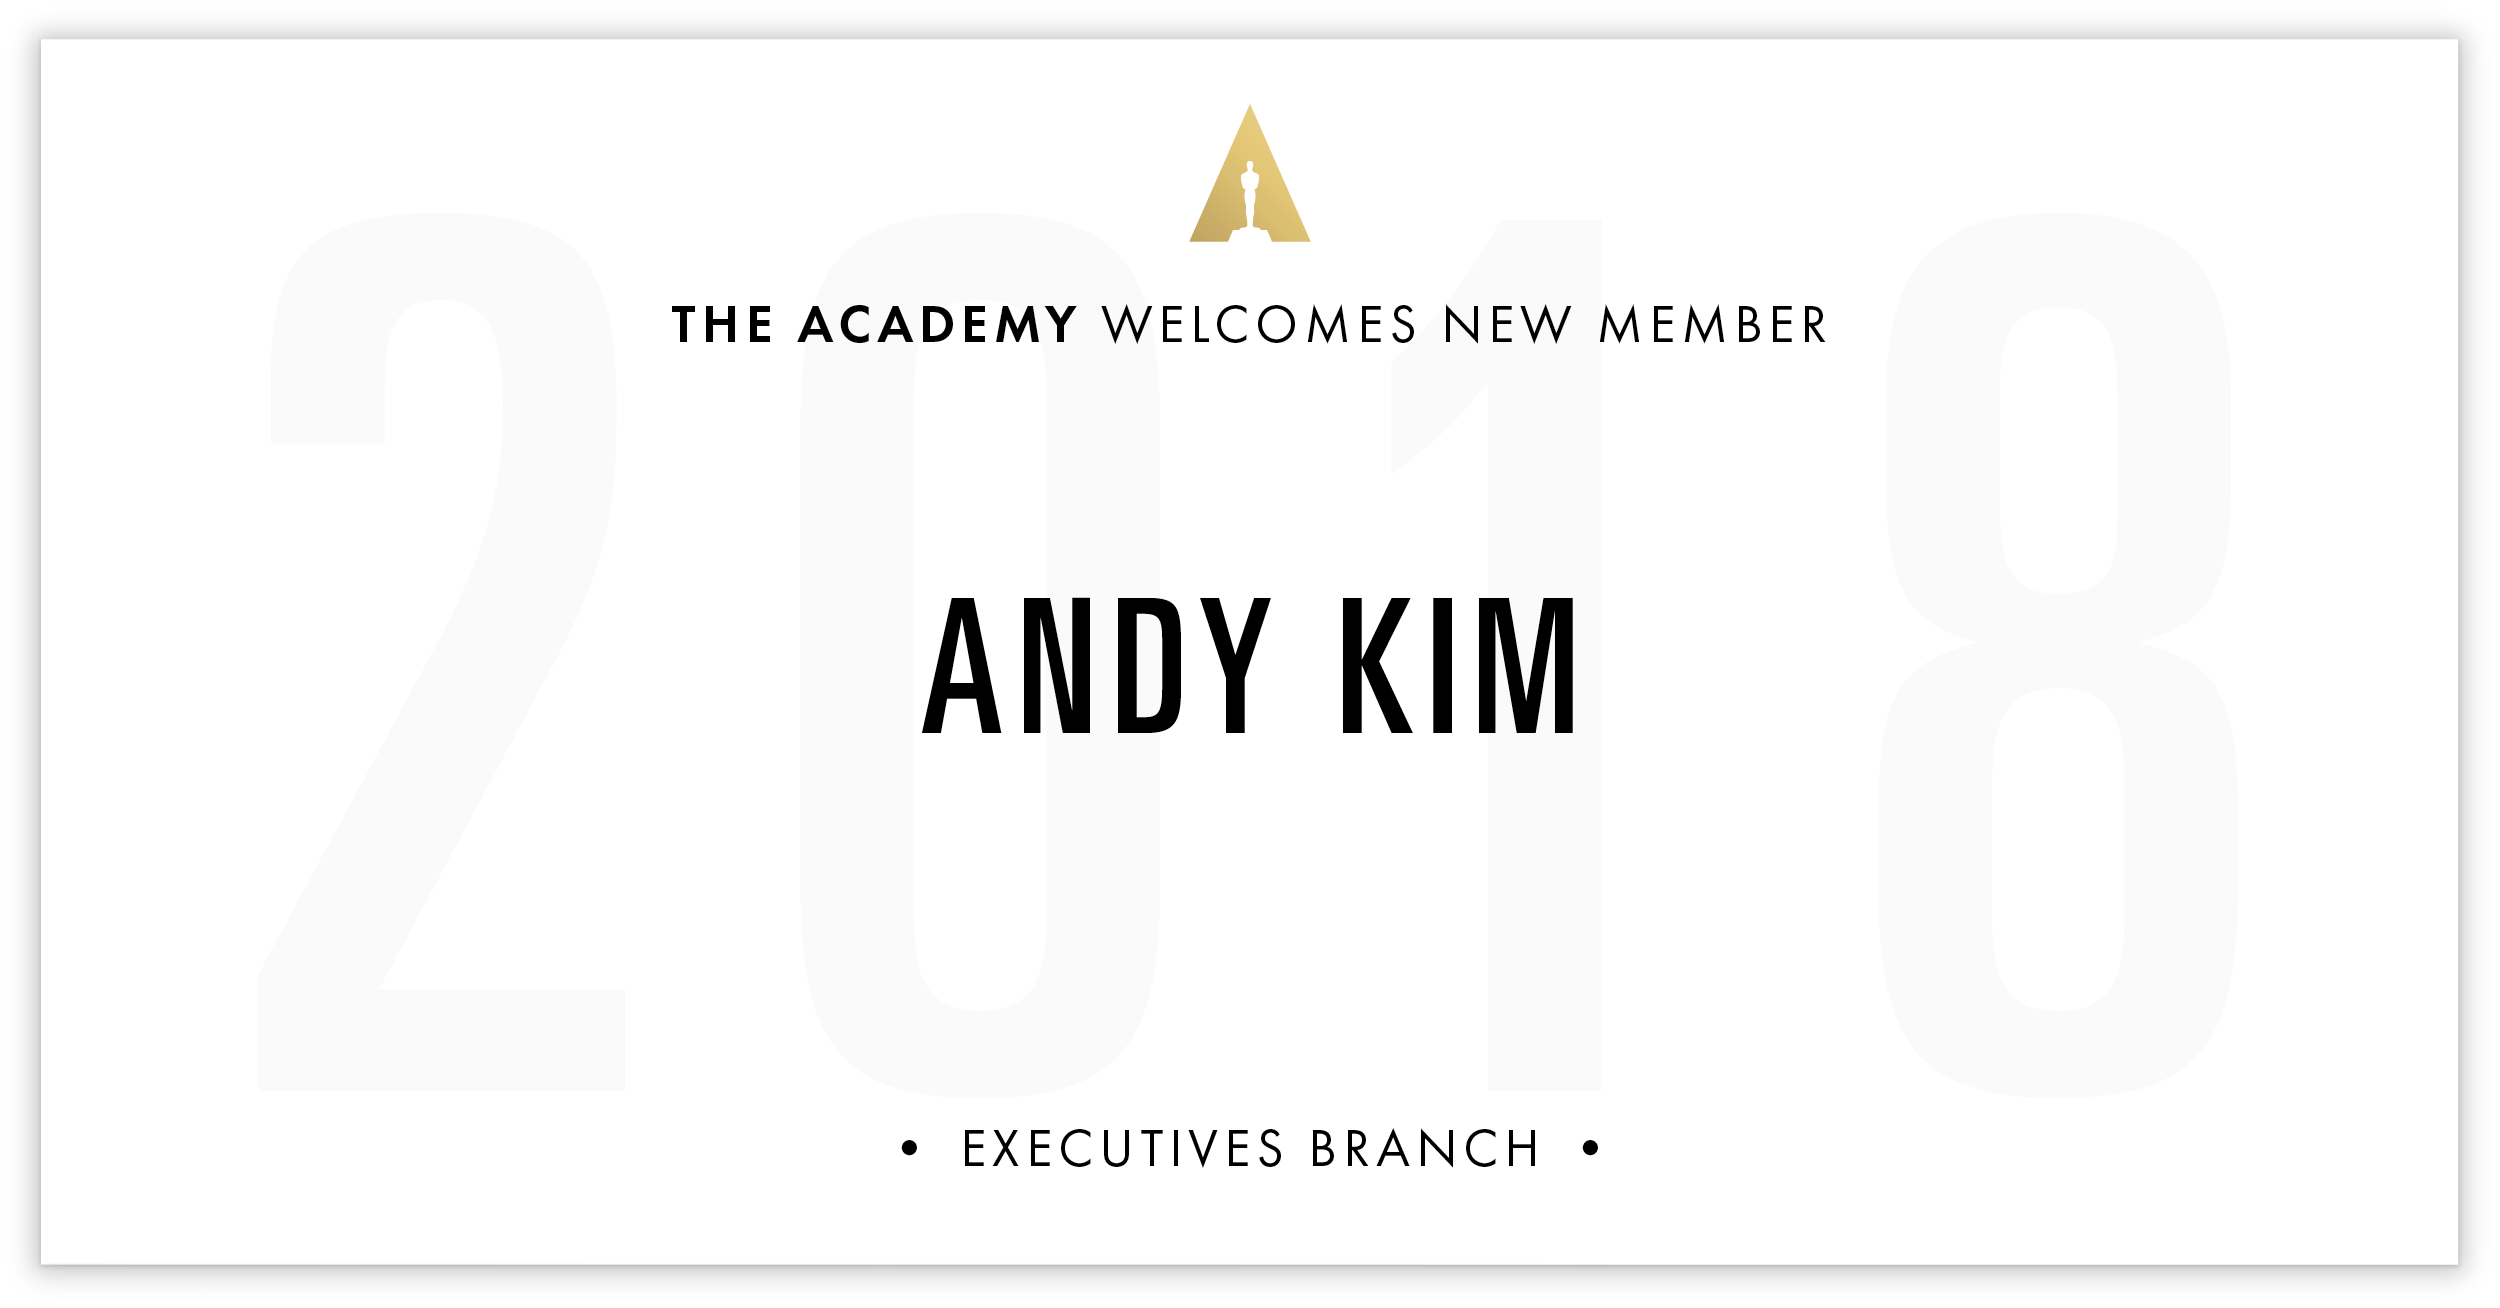 Andy Kim is invited!